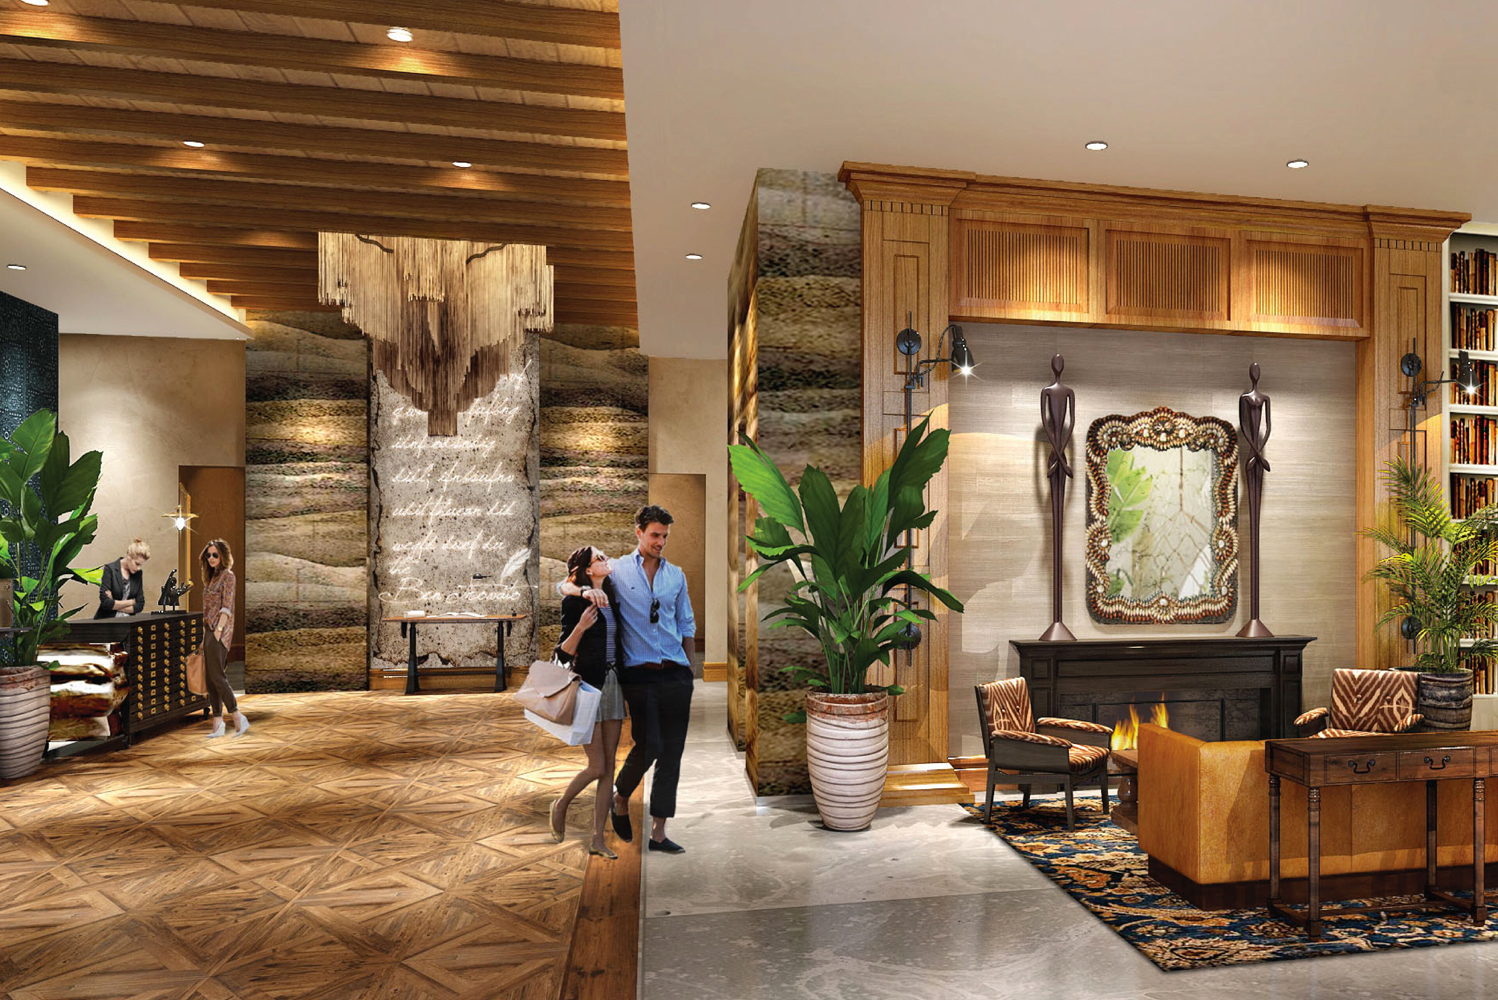 Part of Autograph Collection, Marriott International's collection of hotels, The Ben is the focal point of Flagler Banyan Square, a 3.5-acre mixed-use waterfront development.